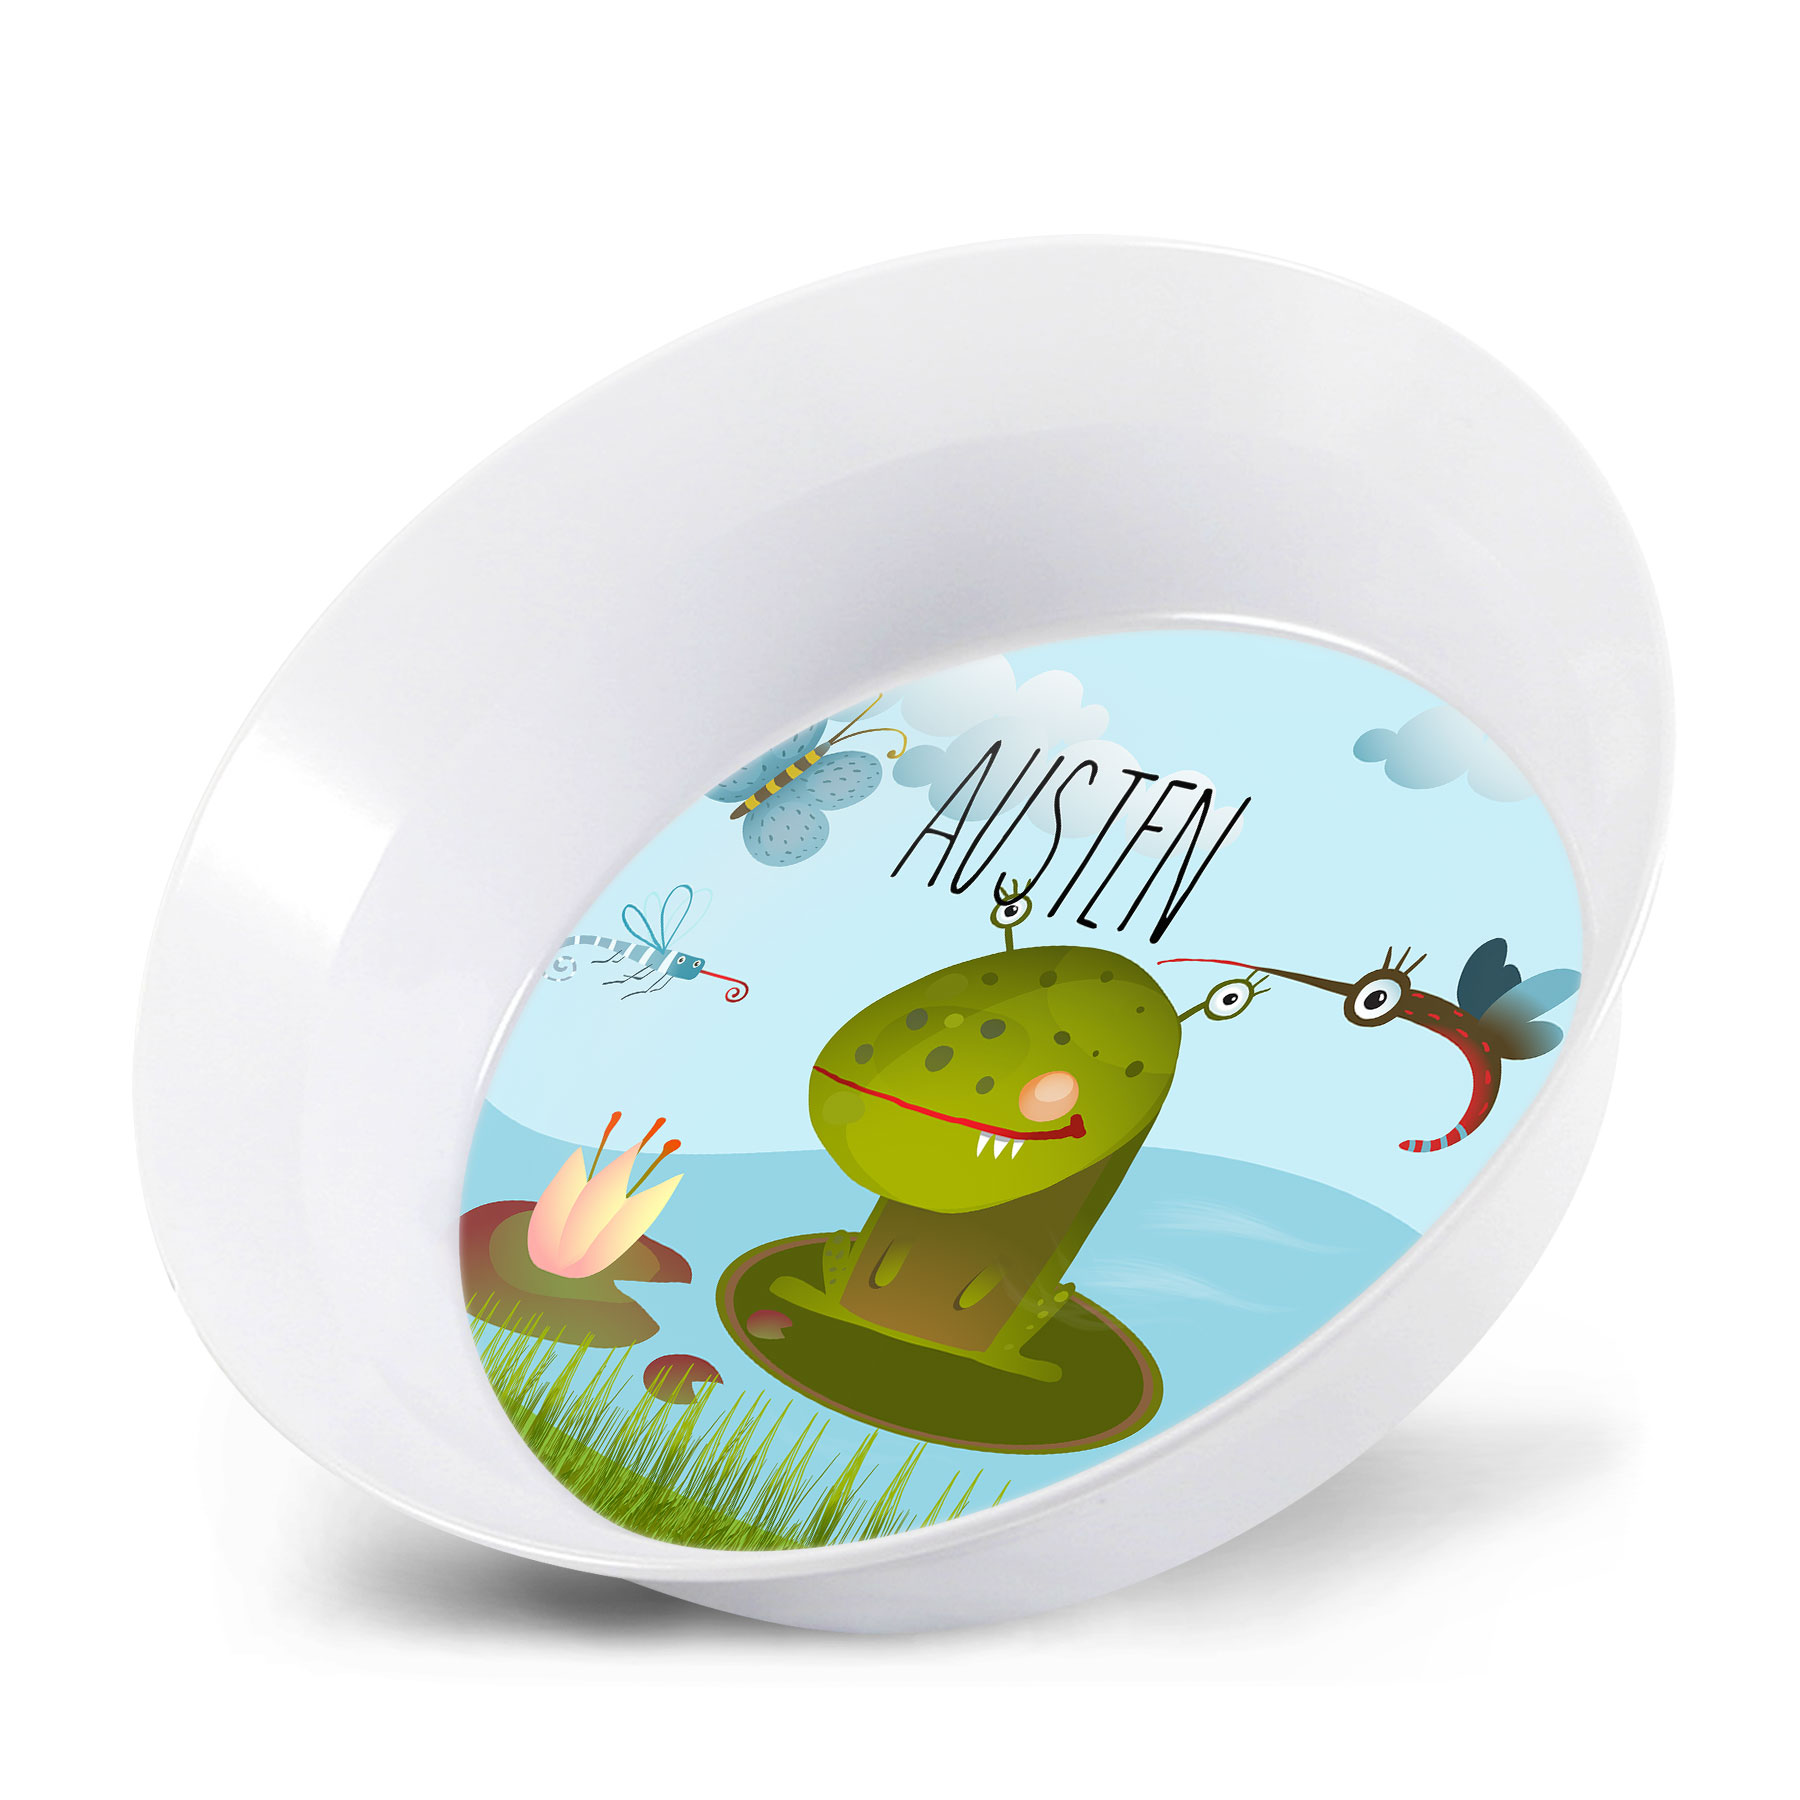 Personalized Kids Bowl - Frog Monster Matching Plate Plate Set ...  sc 1 st  Lime Rikee Designs & Personalized Kids Bowl - Frog Monster | Monster Frog Personalized ...